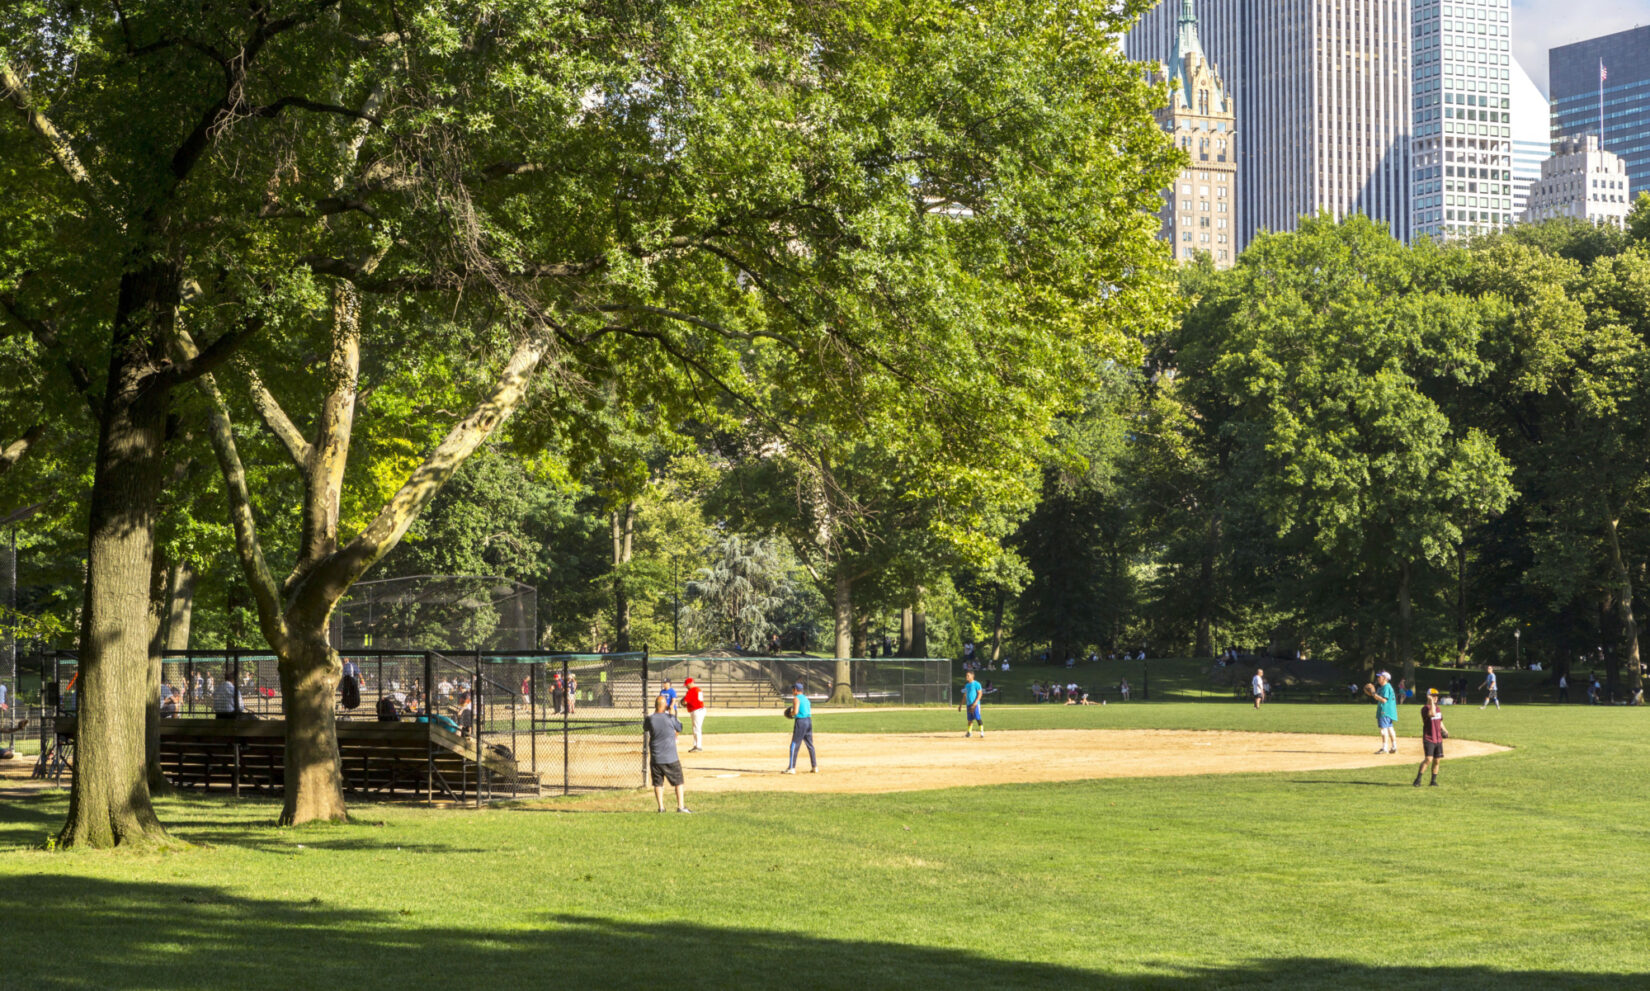 Ballplayers waiting for the pitch under a lush canopy of green leaves.